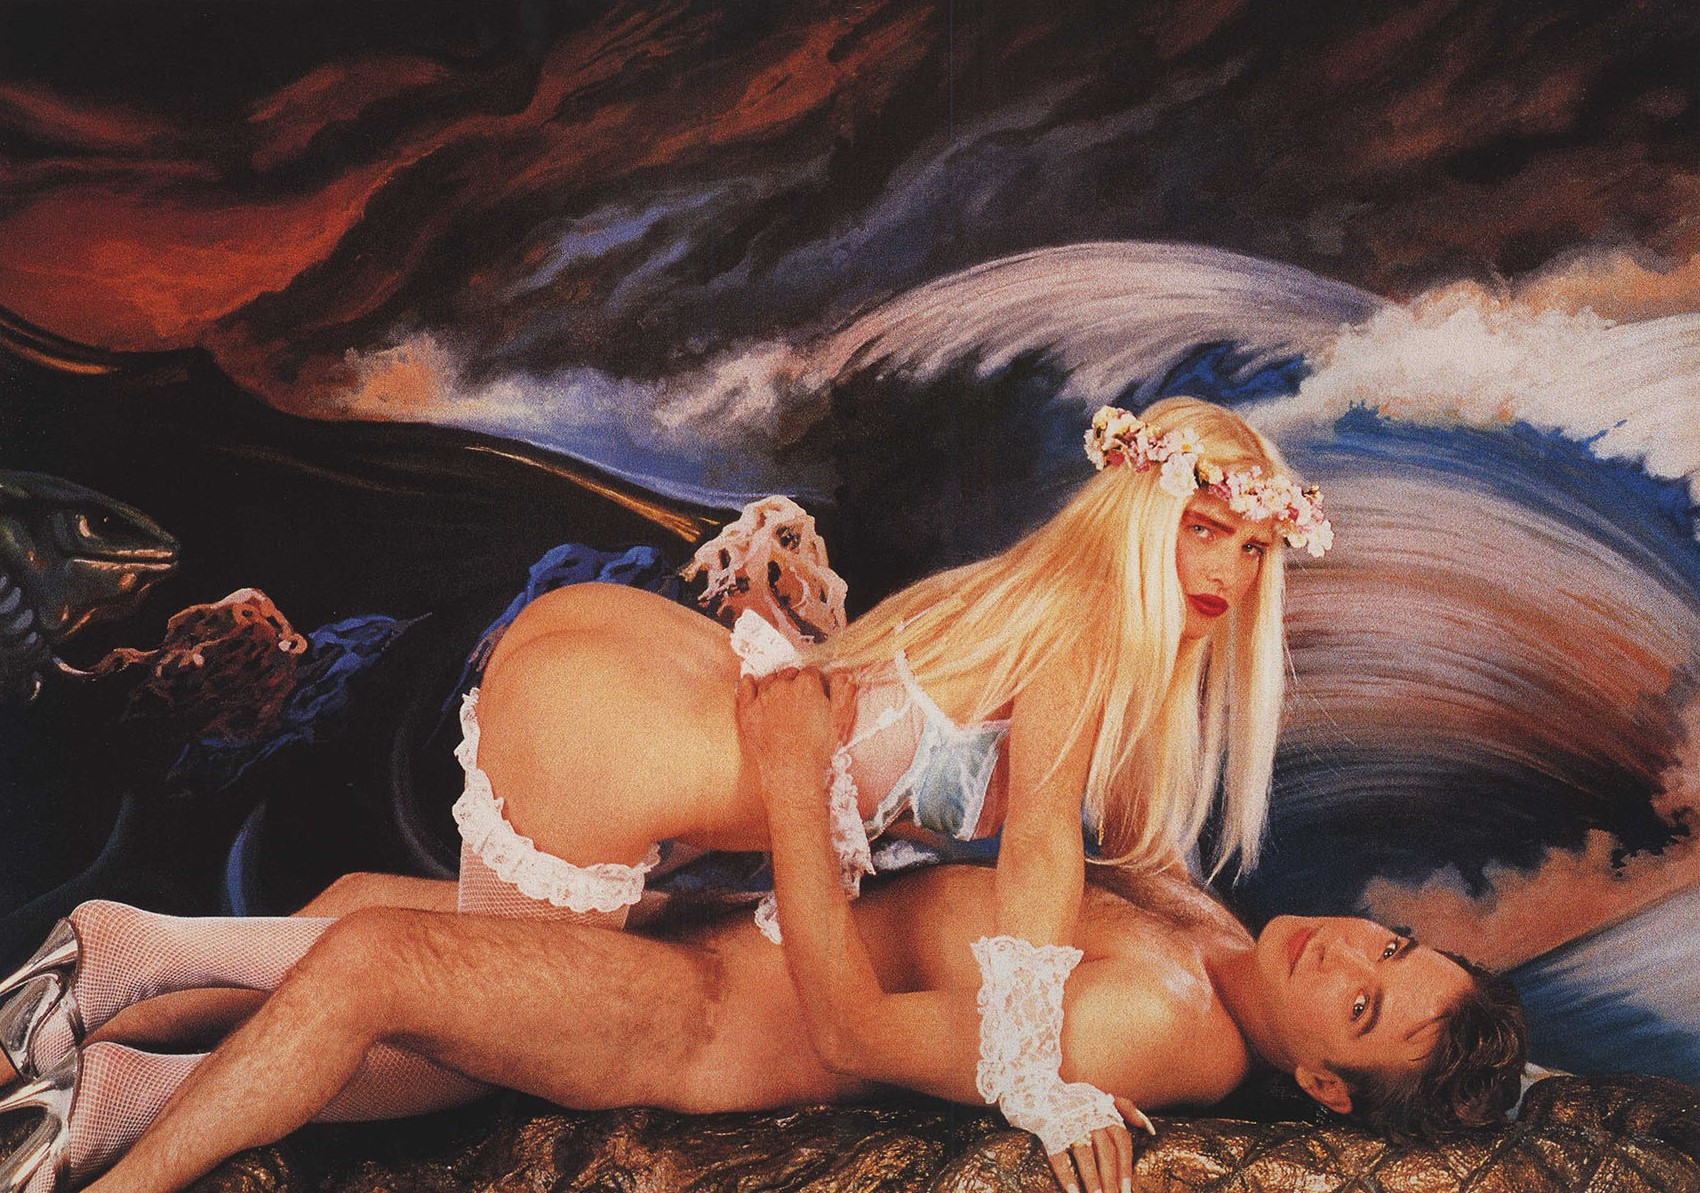 ilona with ass up by jeff koons 1990